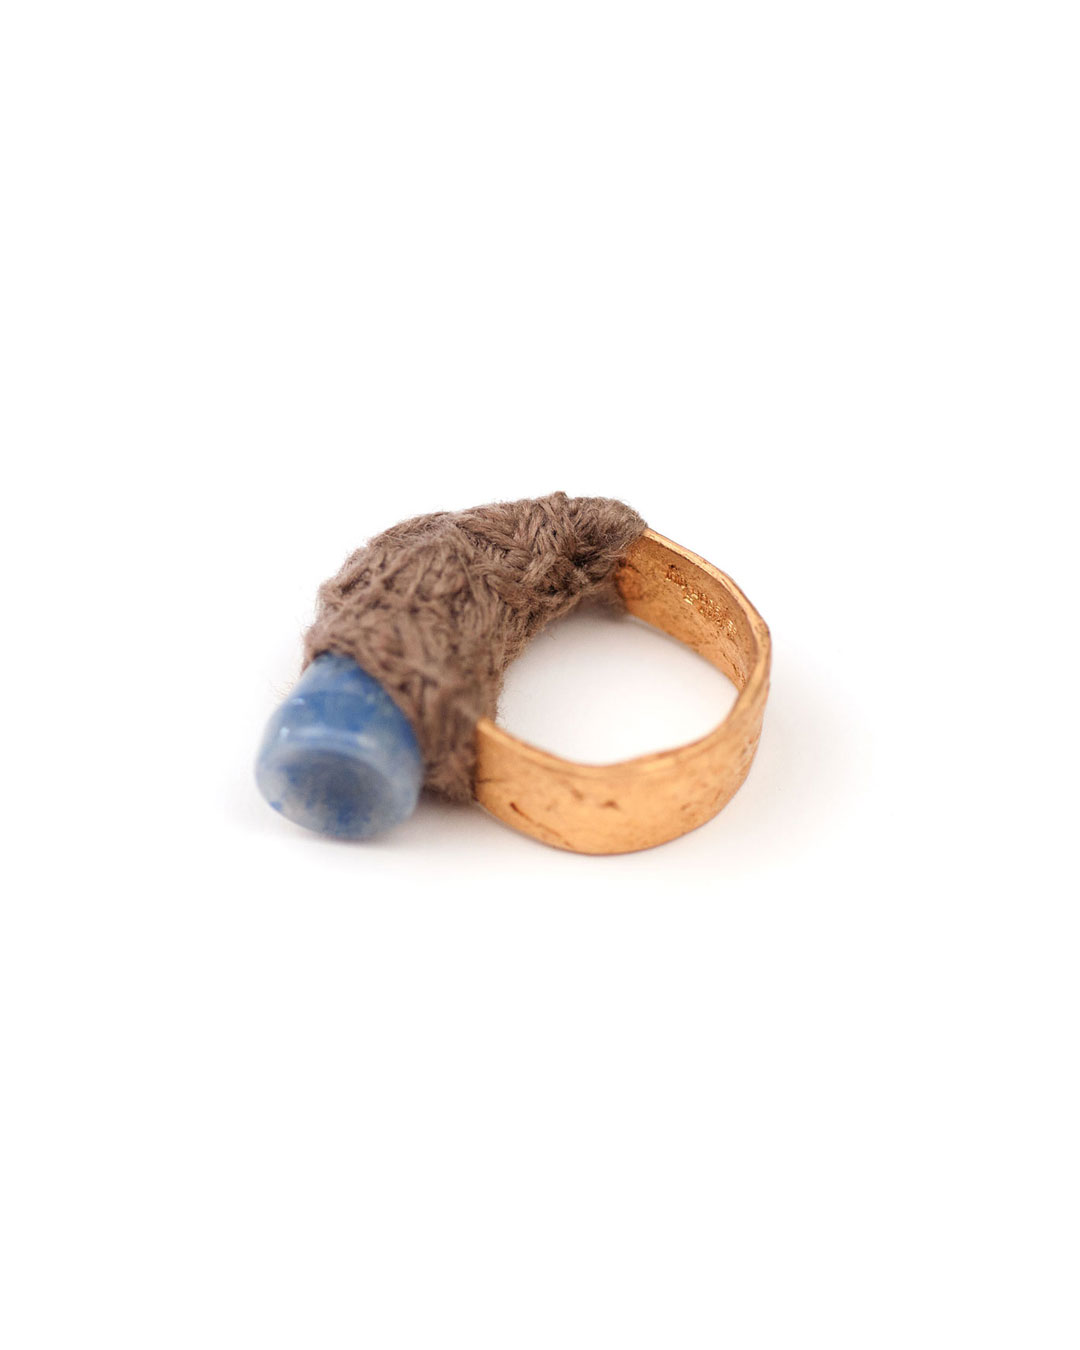 Iris Bodemer, untitled, 2004, ring; bronze, sodalite, wool, 33 x 33 x 8 mm, €1000